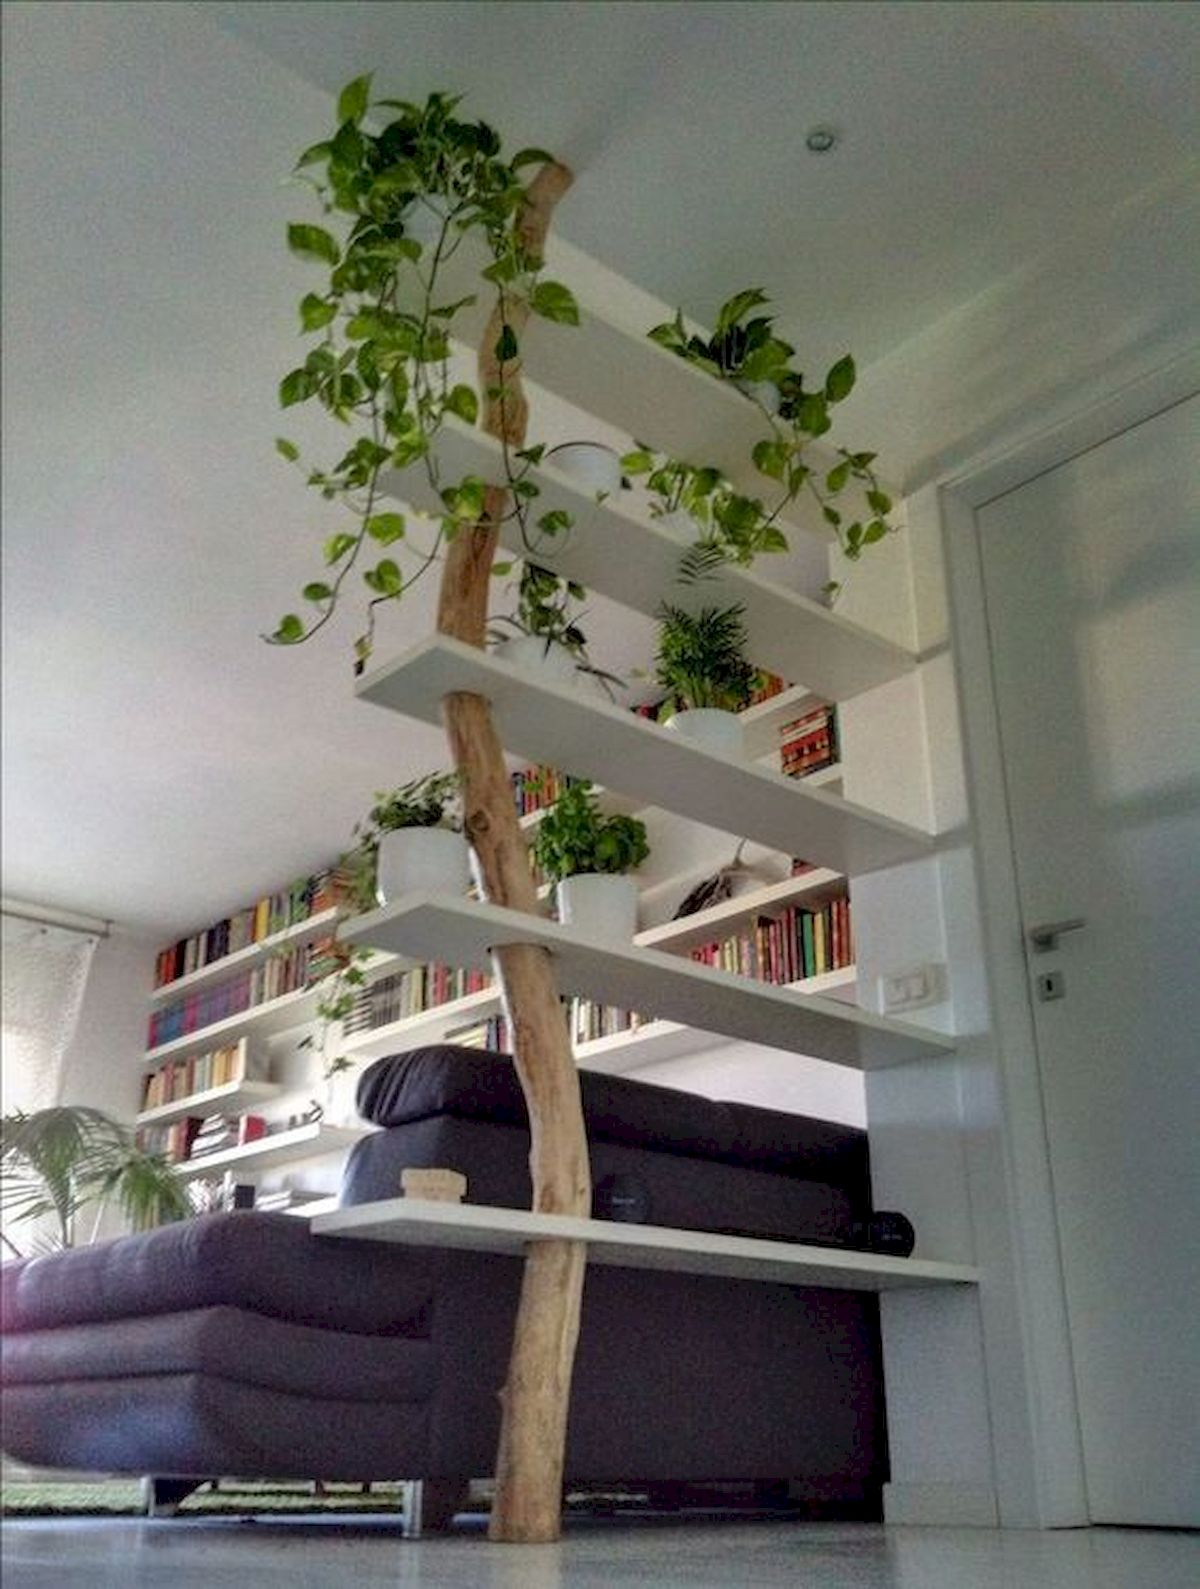 44 Fantastic Vertical Garden Ideas To Make Your Home Beautiful (3)